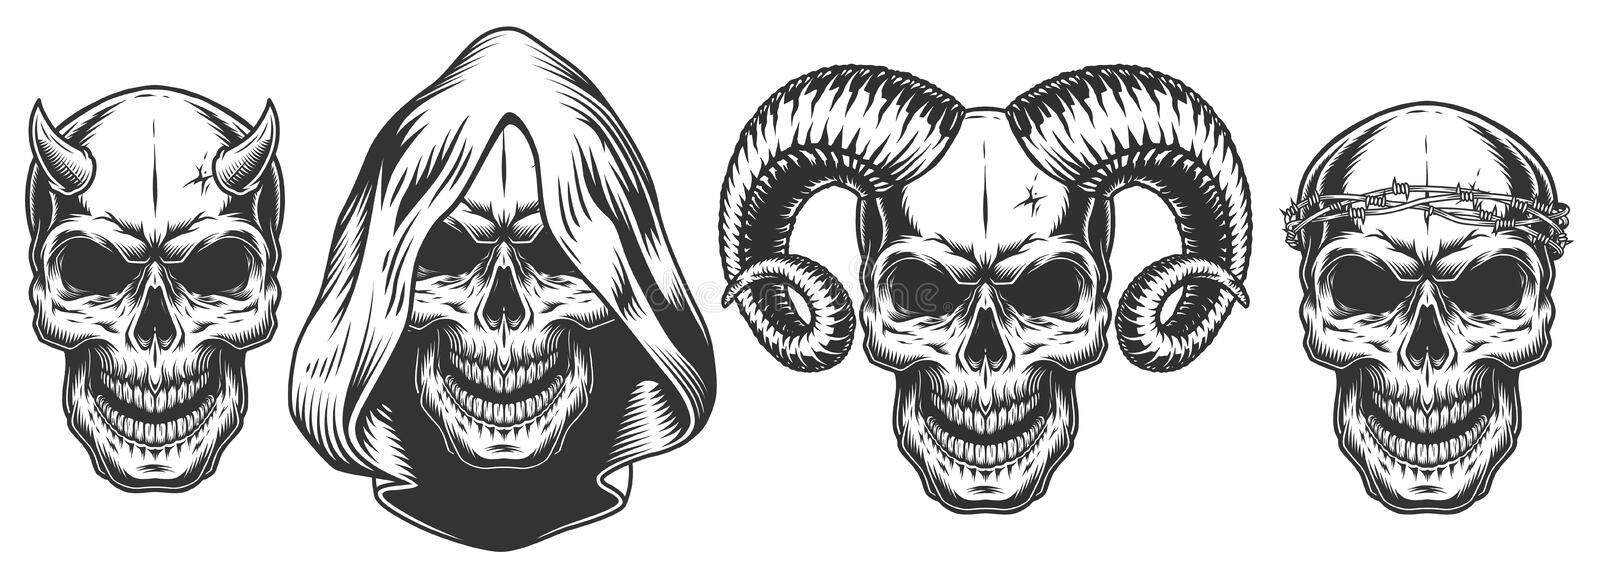 Set of demons skull with horns vector illustration